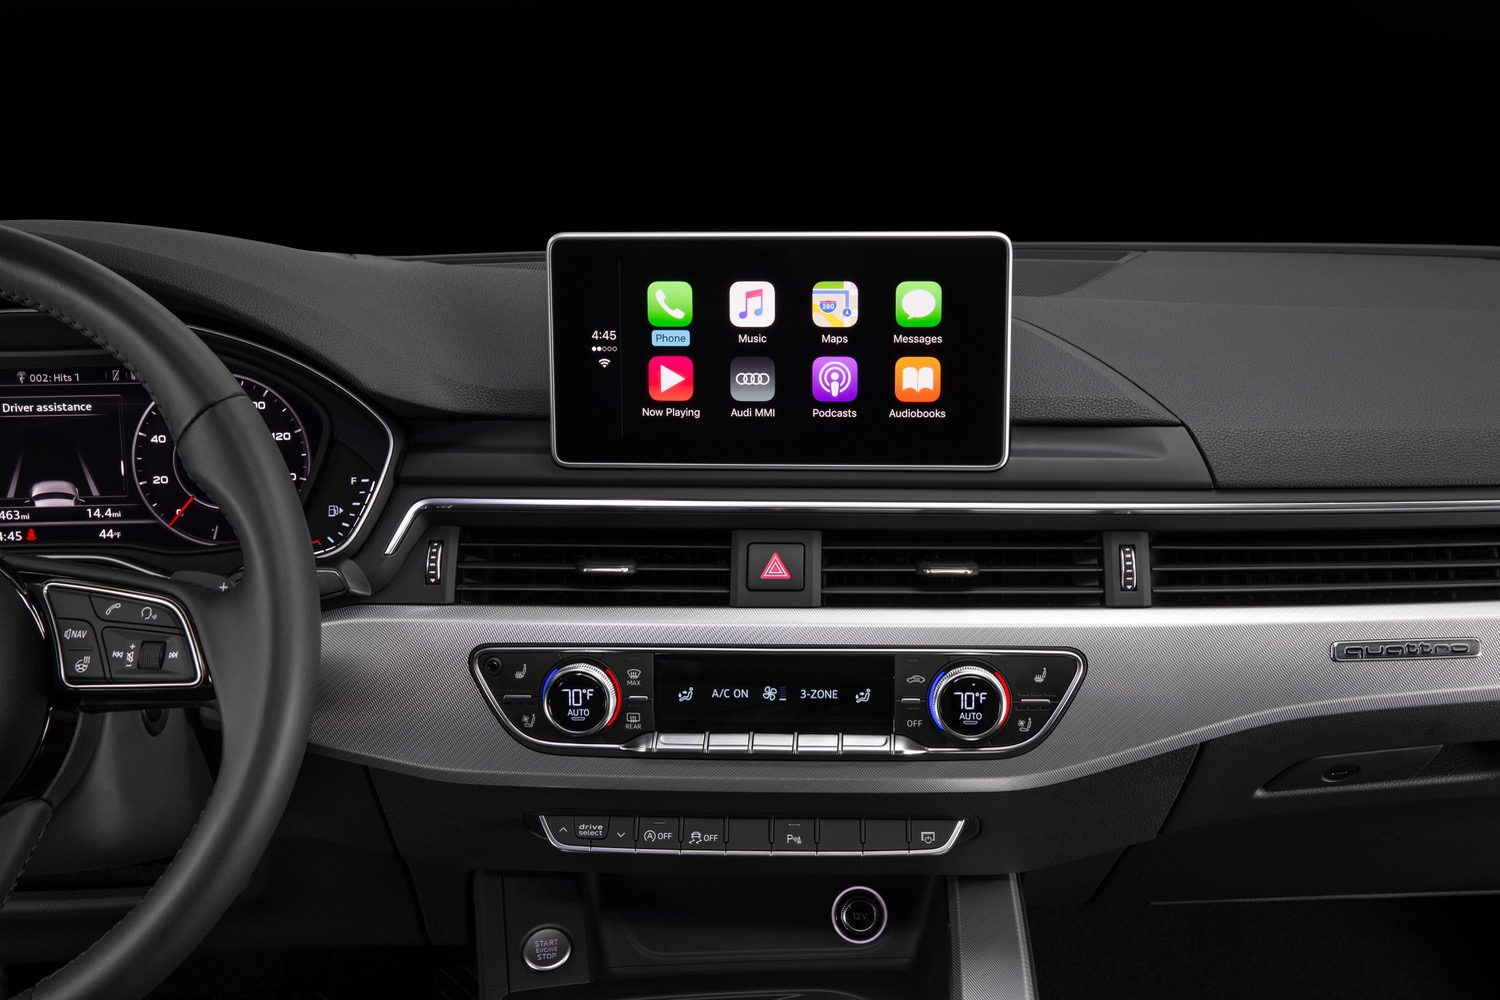 The Best Infotainment System You Can Buy